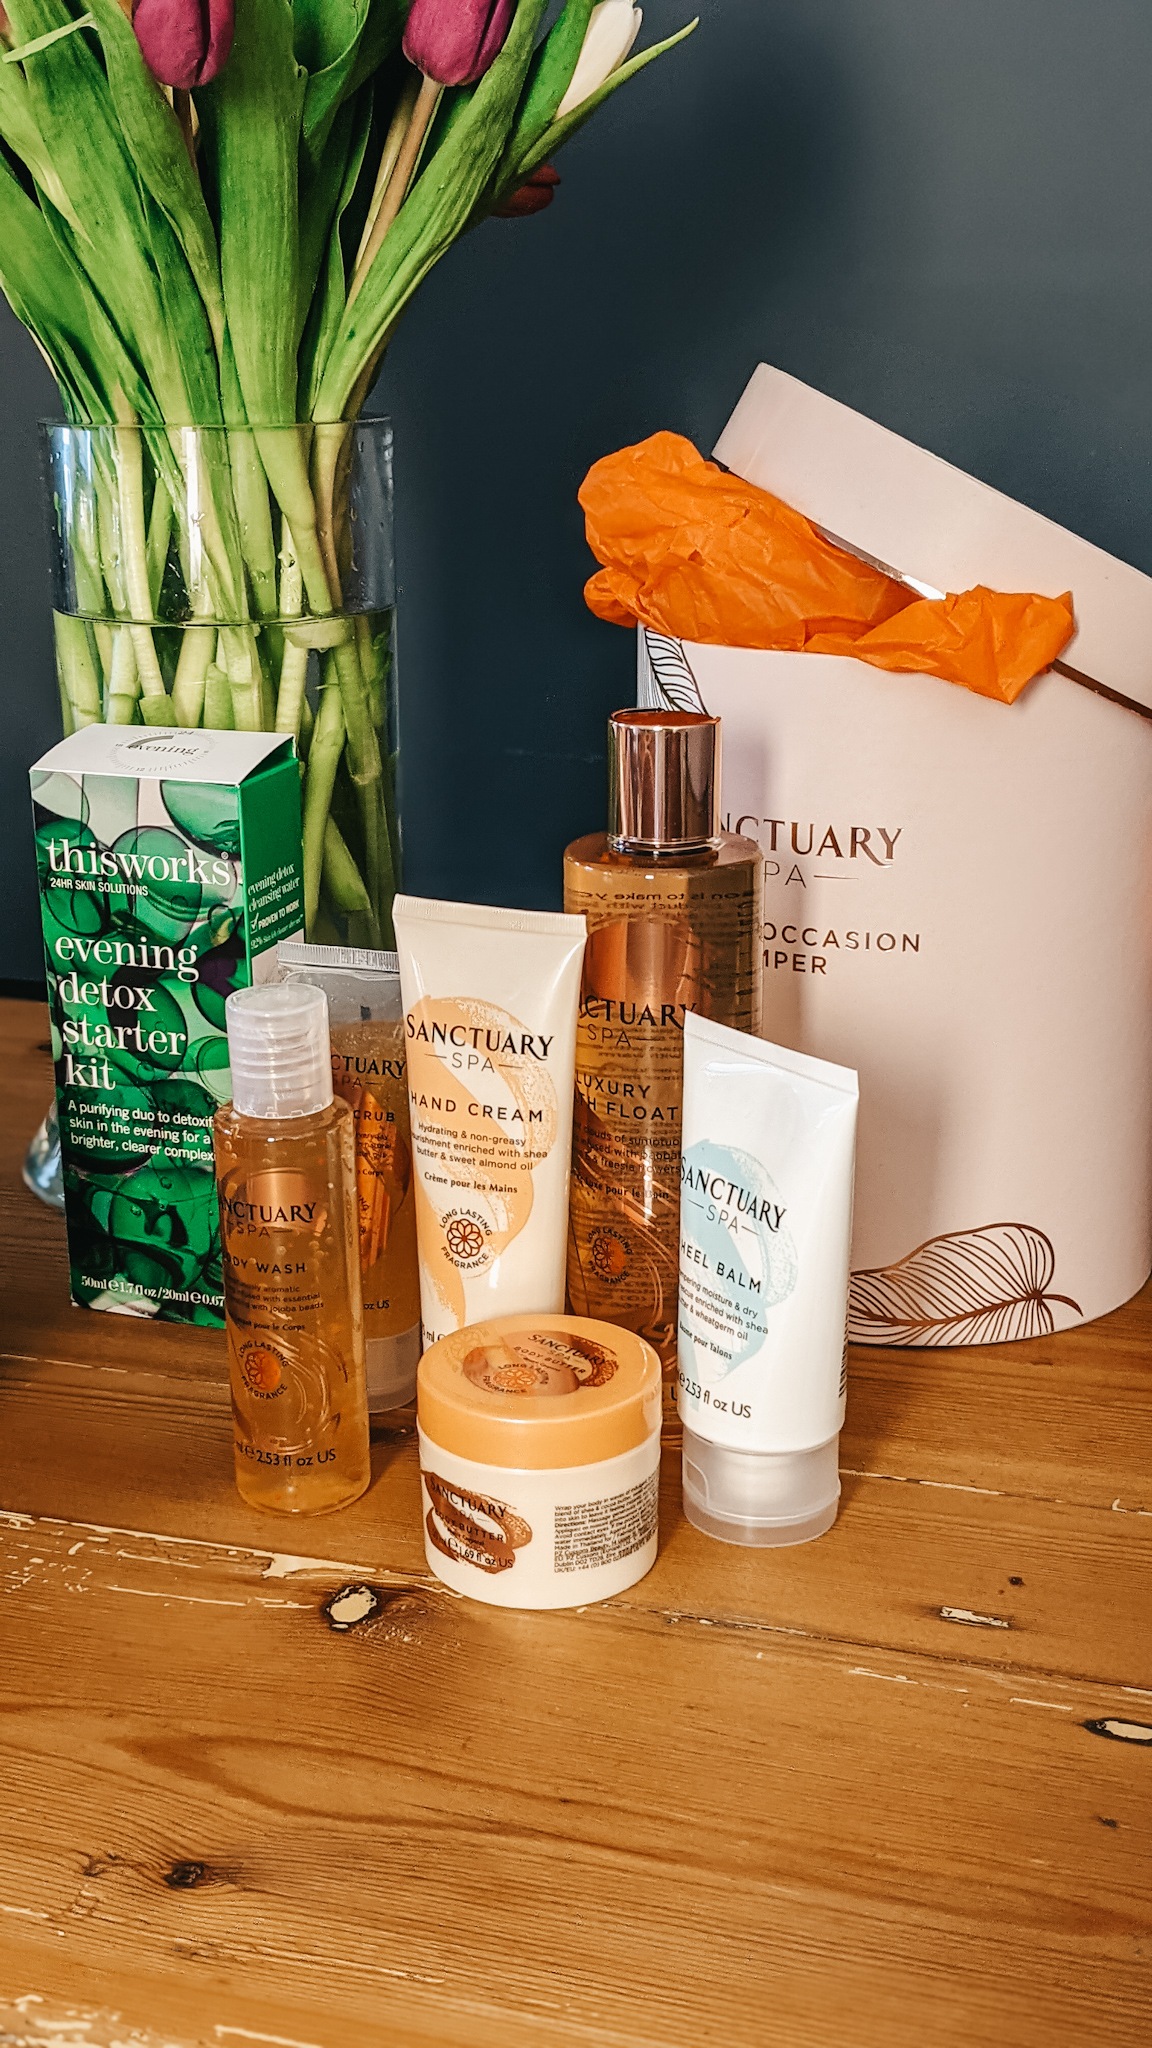 sanctuary spa mother's day gifts